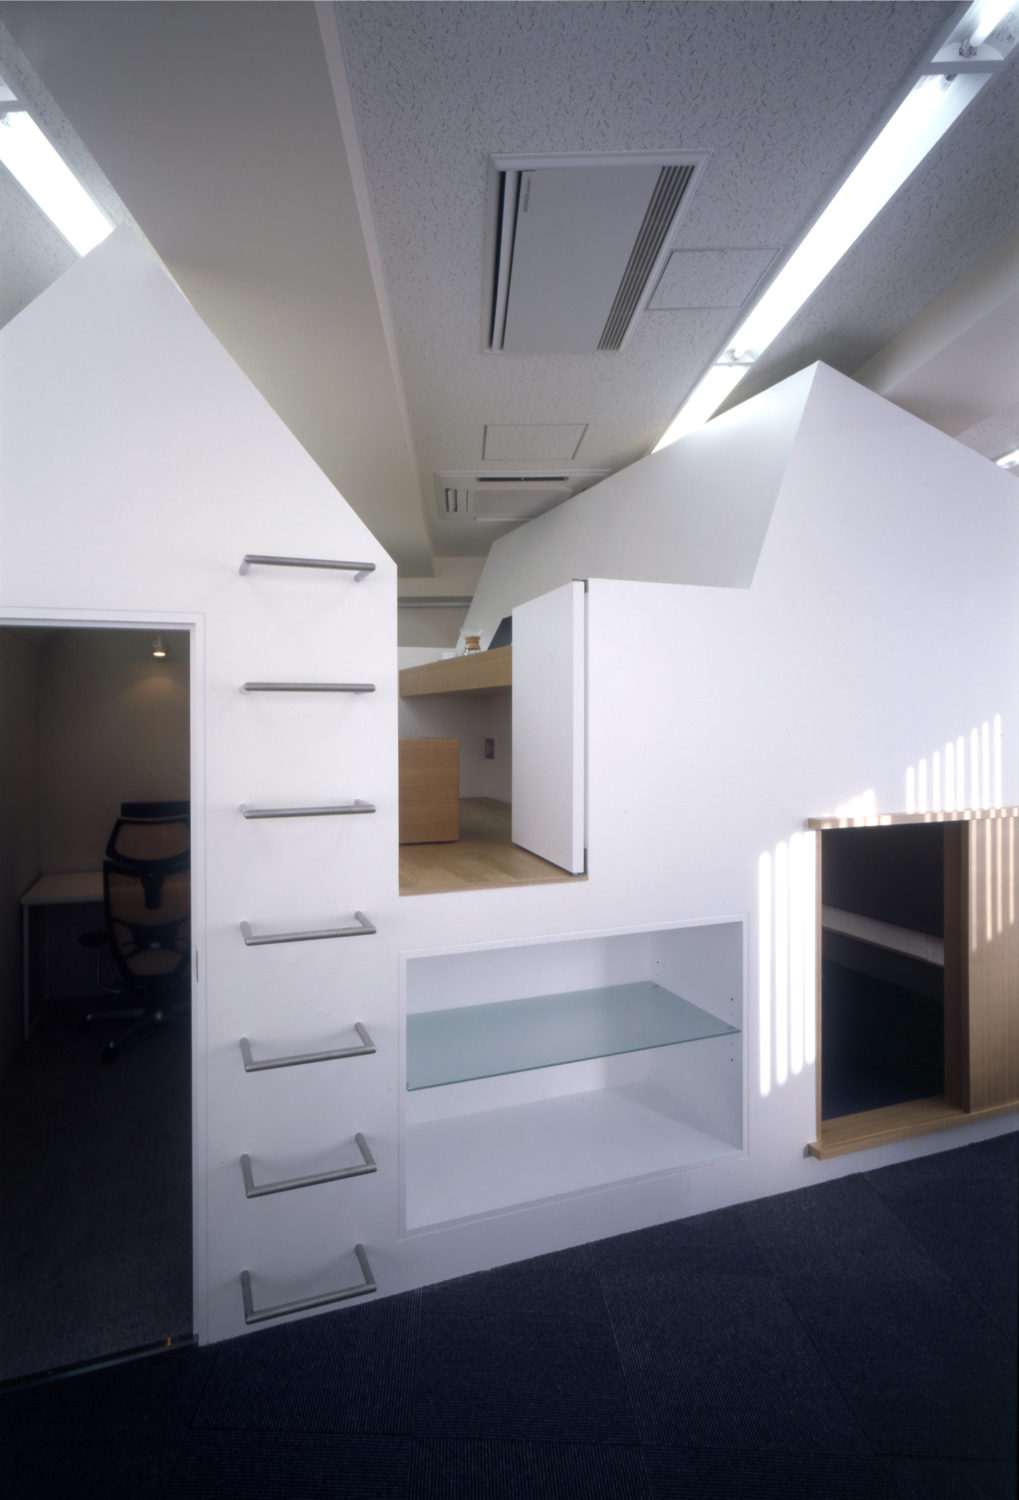 GOOD DESIGN AWARD YEARBOOK 2008 2009 Japan IA 12 MONITOR 52 German Annual Of Space Design In INTERIOR OF JAPANESE